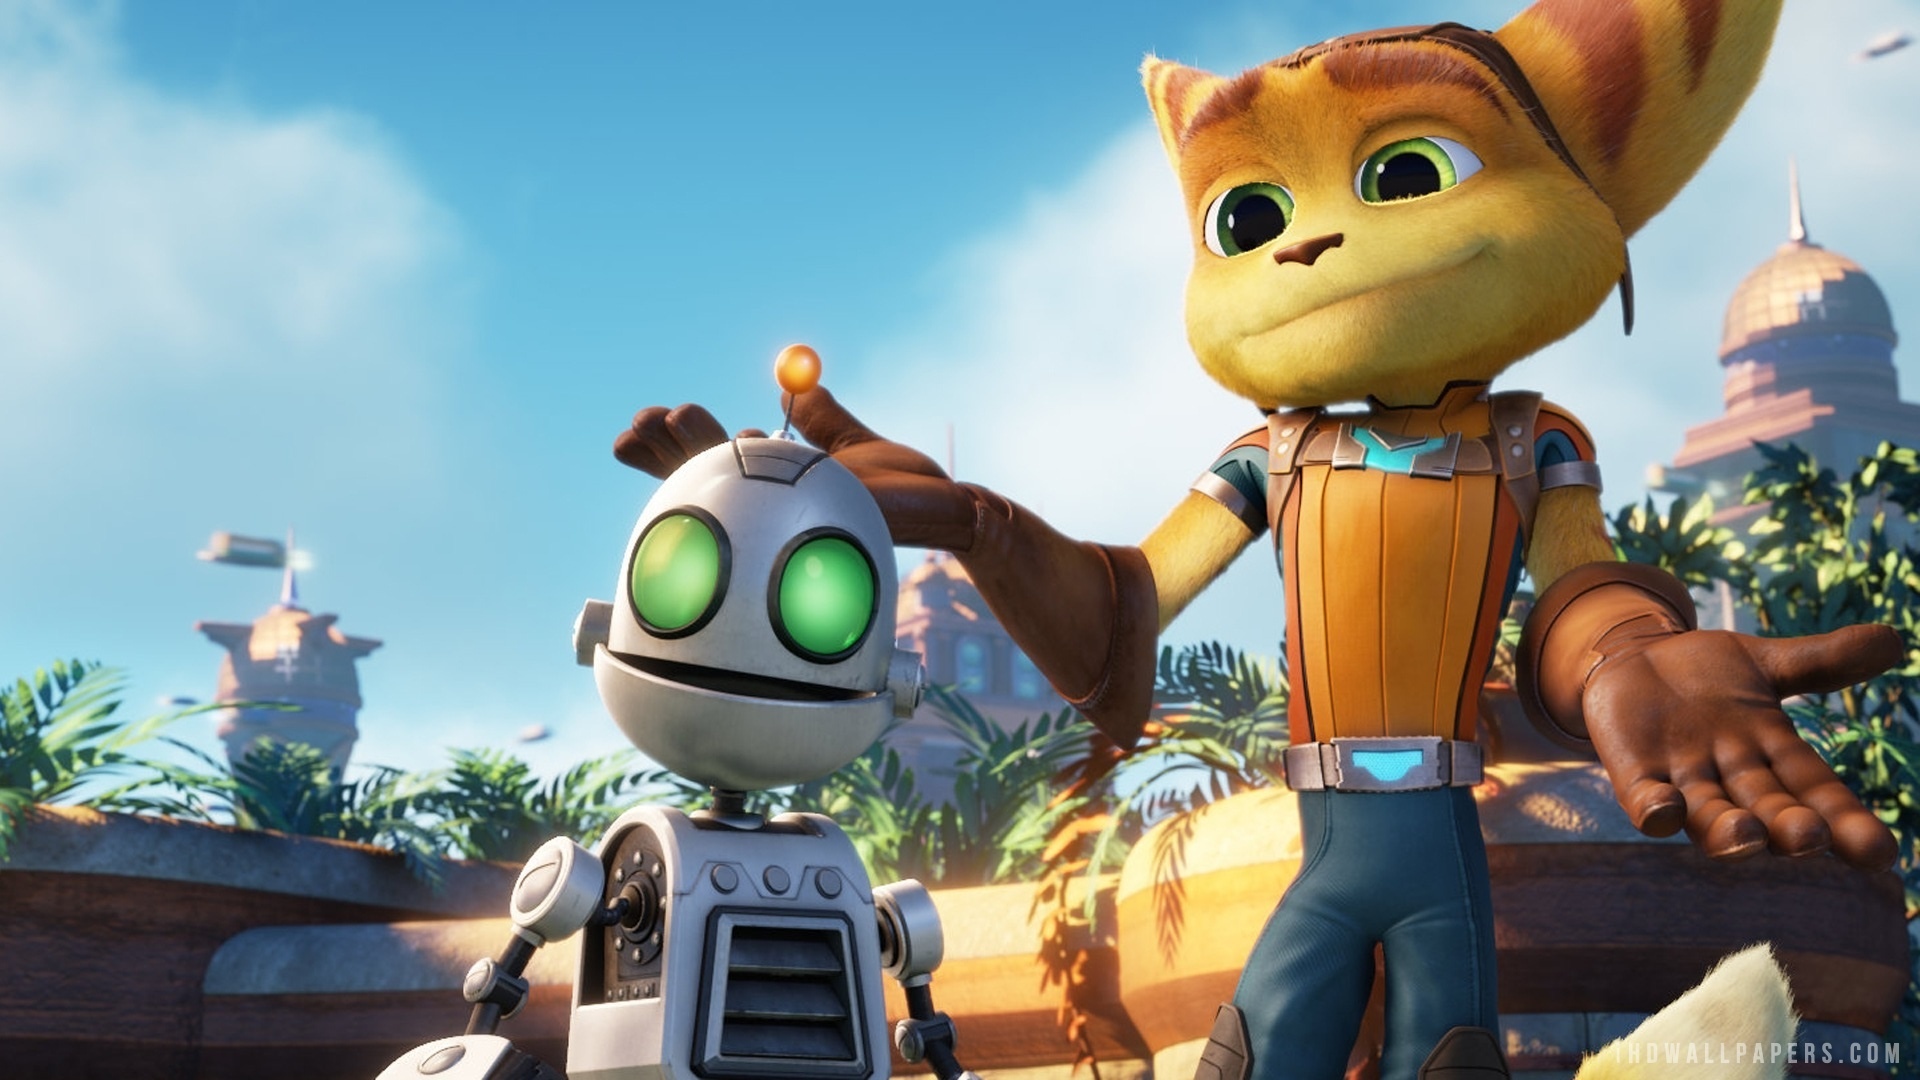 ratchet__clank_2015_movie-1920x1080